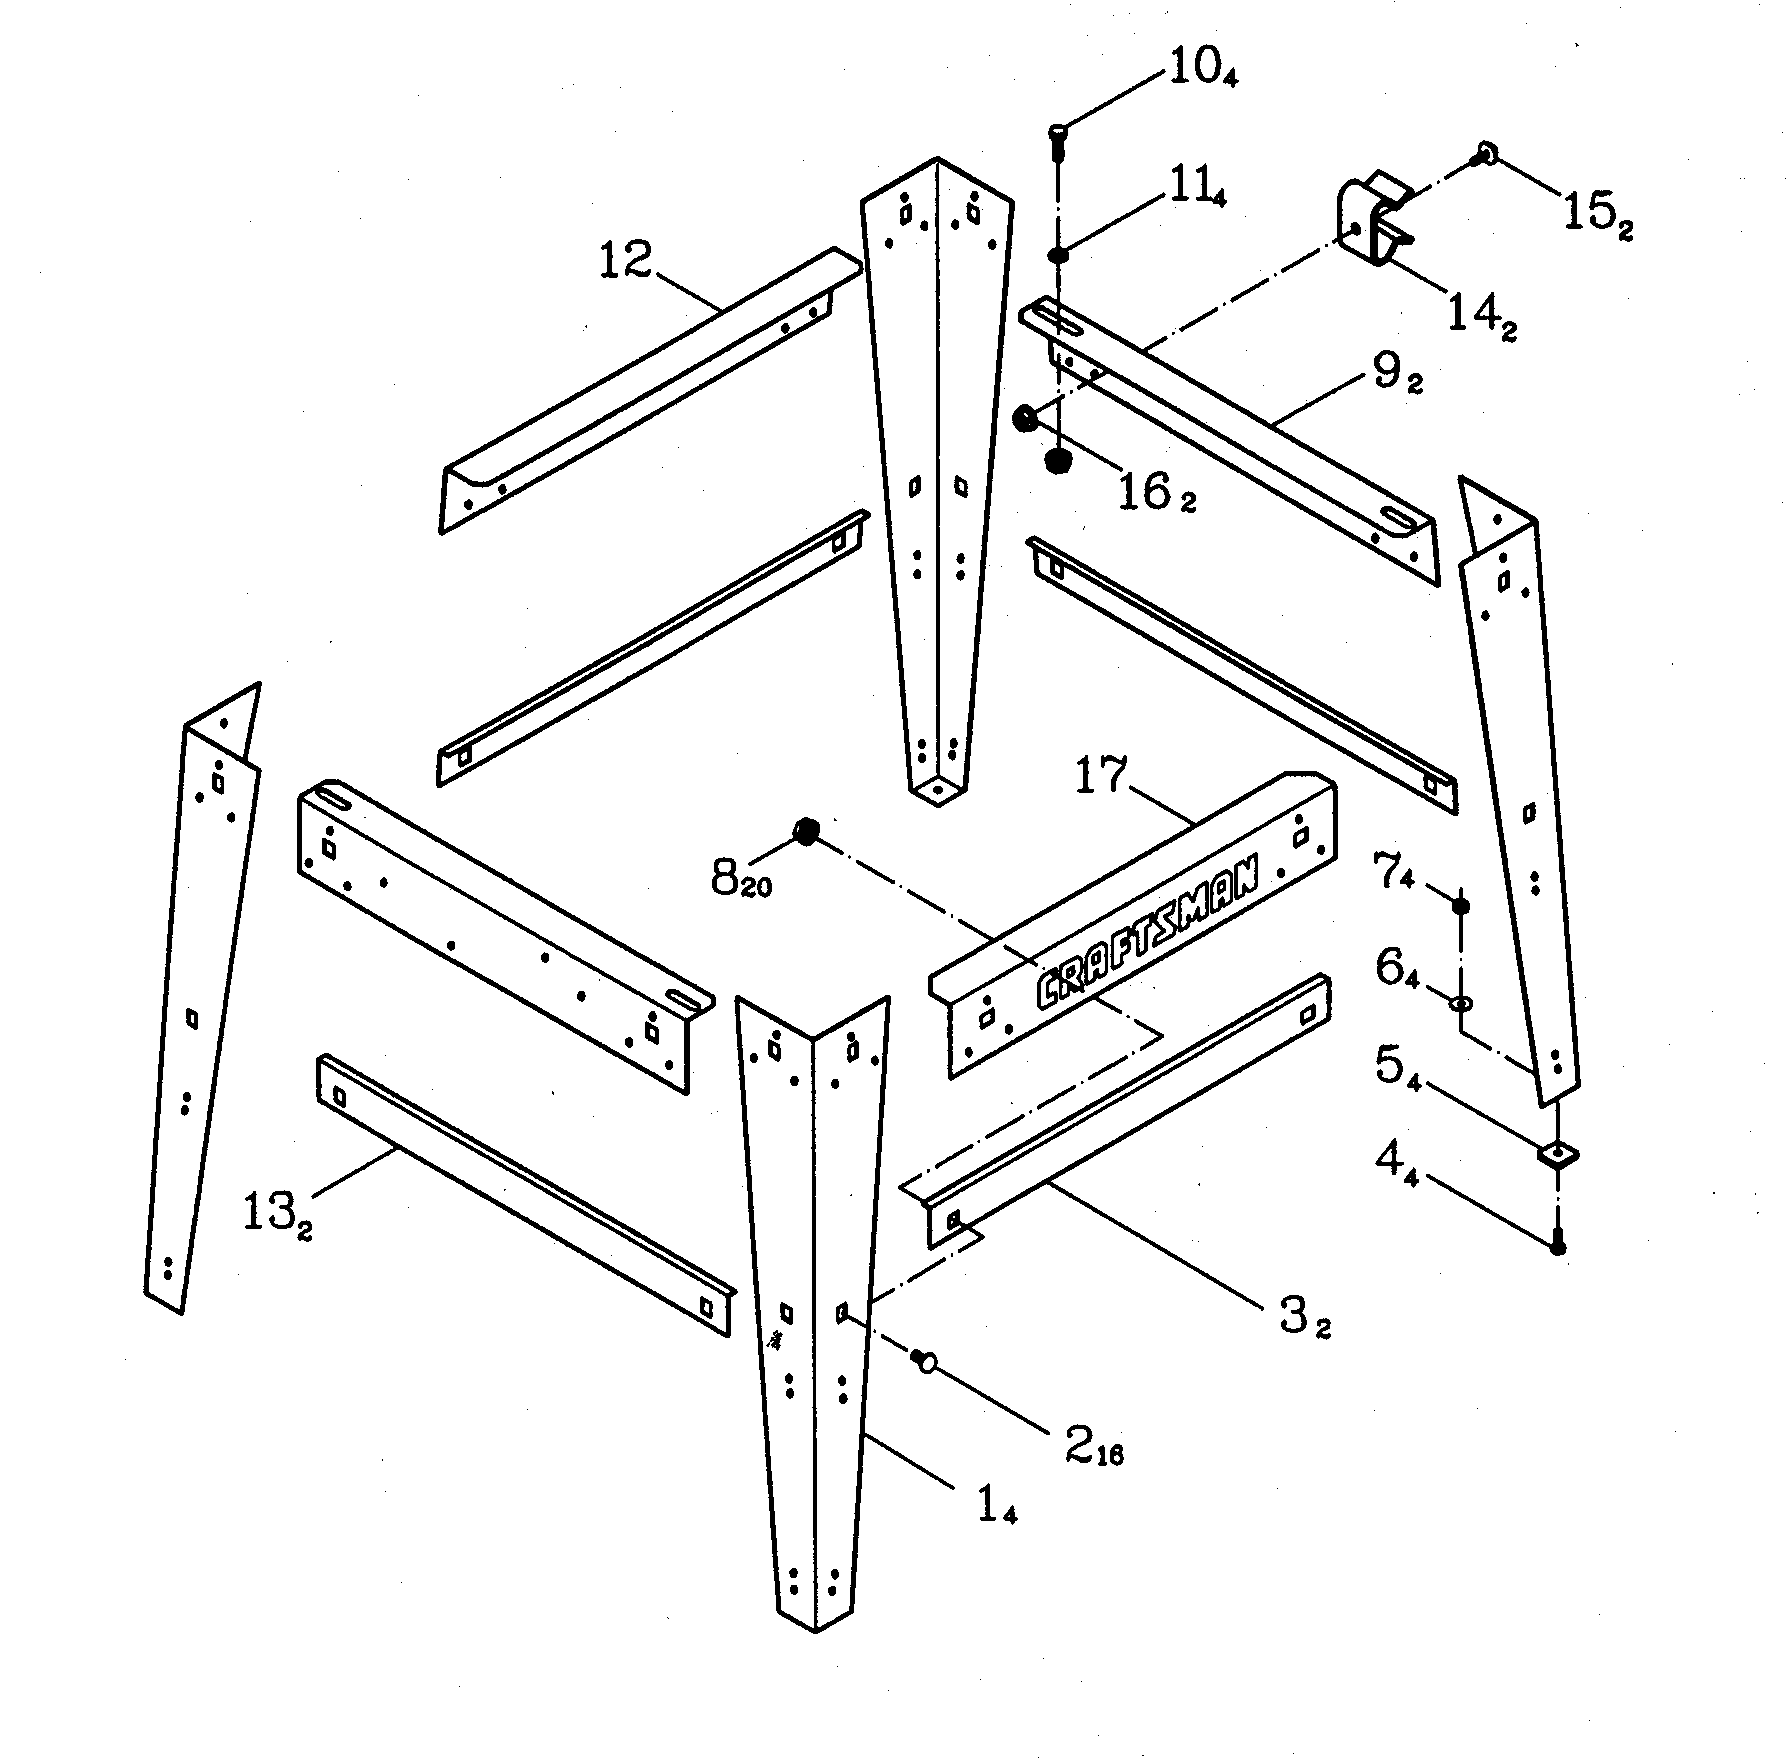 hight resolution of craftsman 137248880 stand diagram